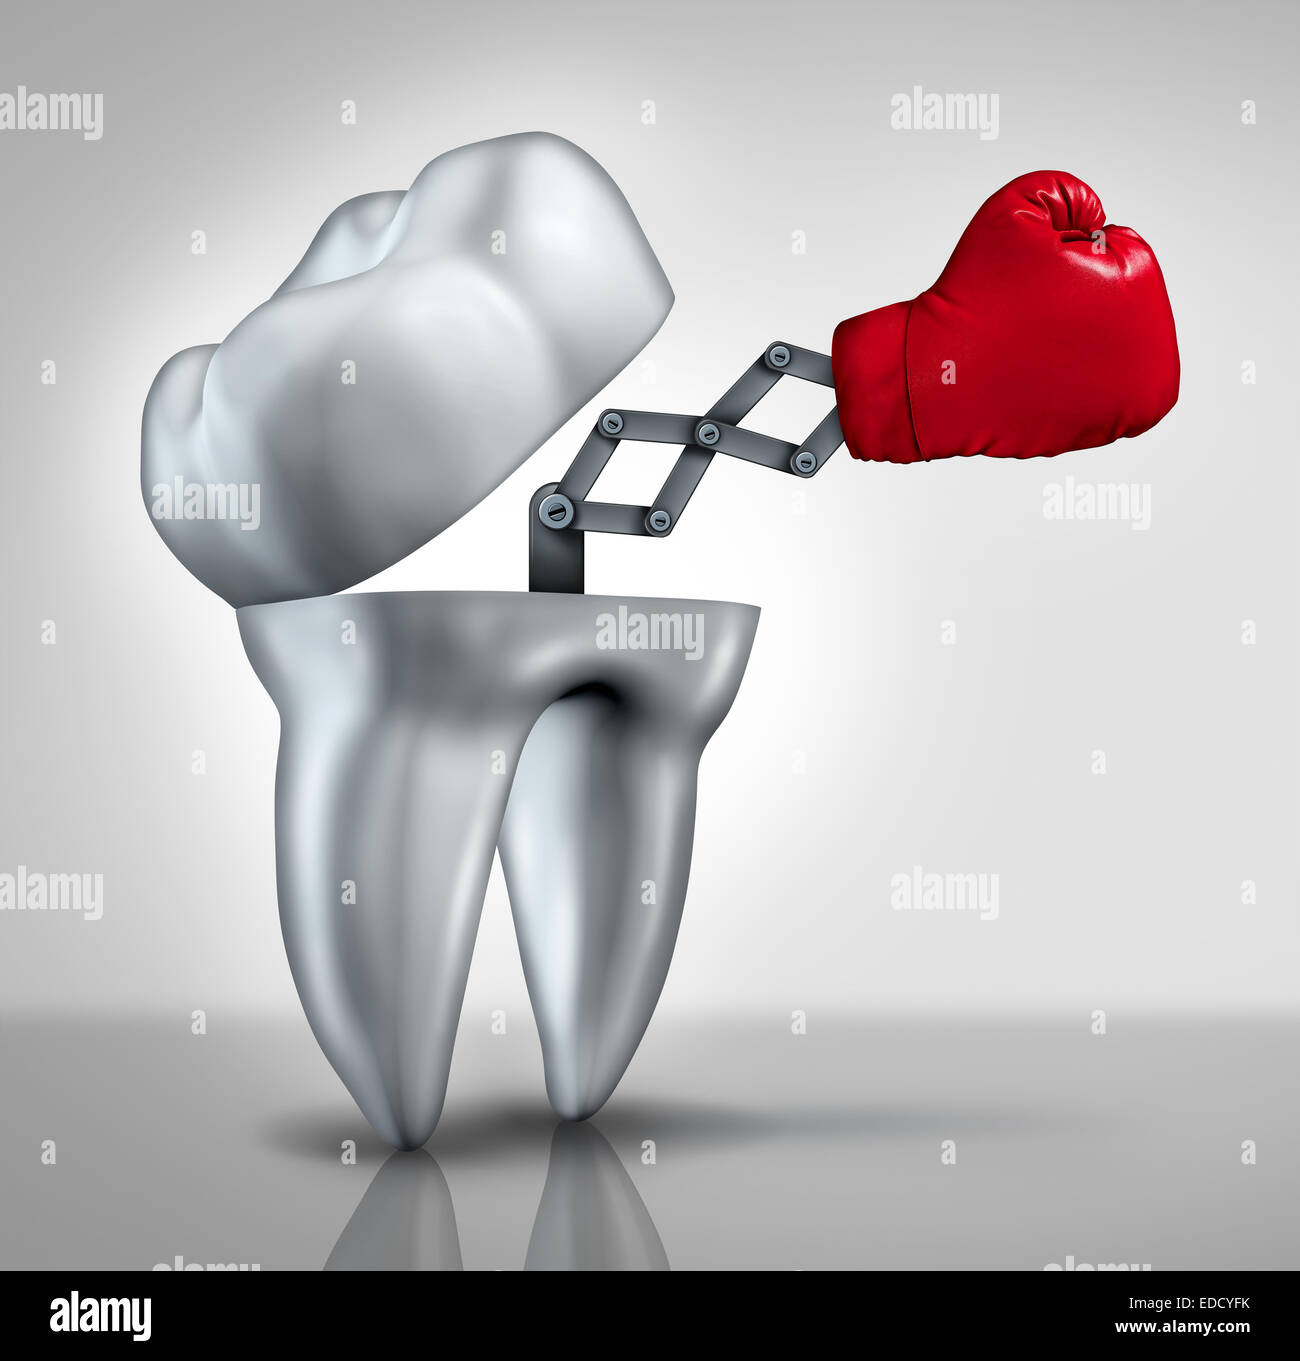 Fighting cavities and dental health care concept as an open molar tooth with a red boxing glove emerging to fight - Stock Image